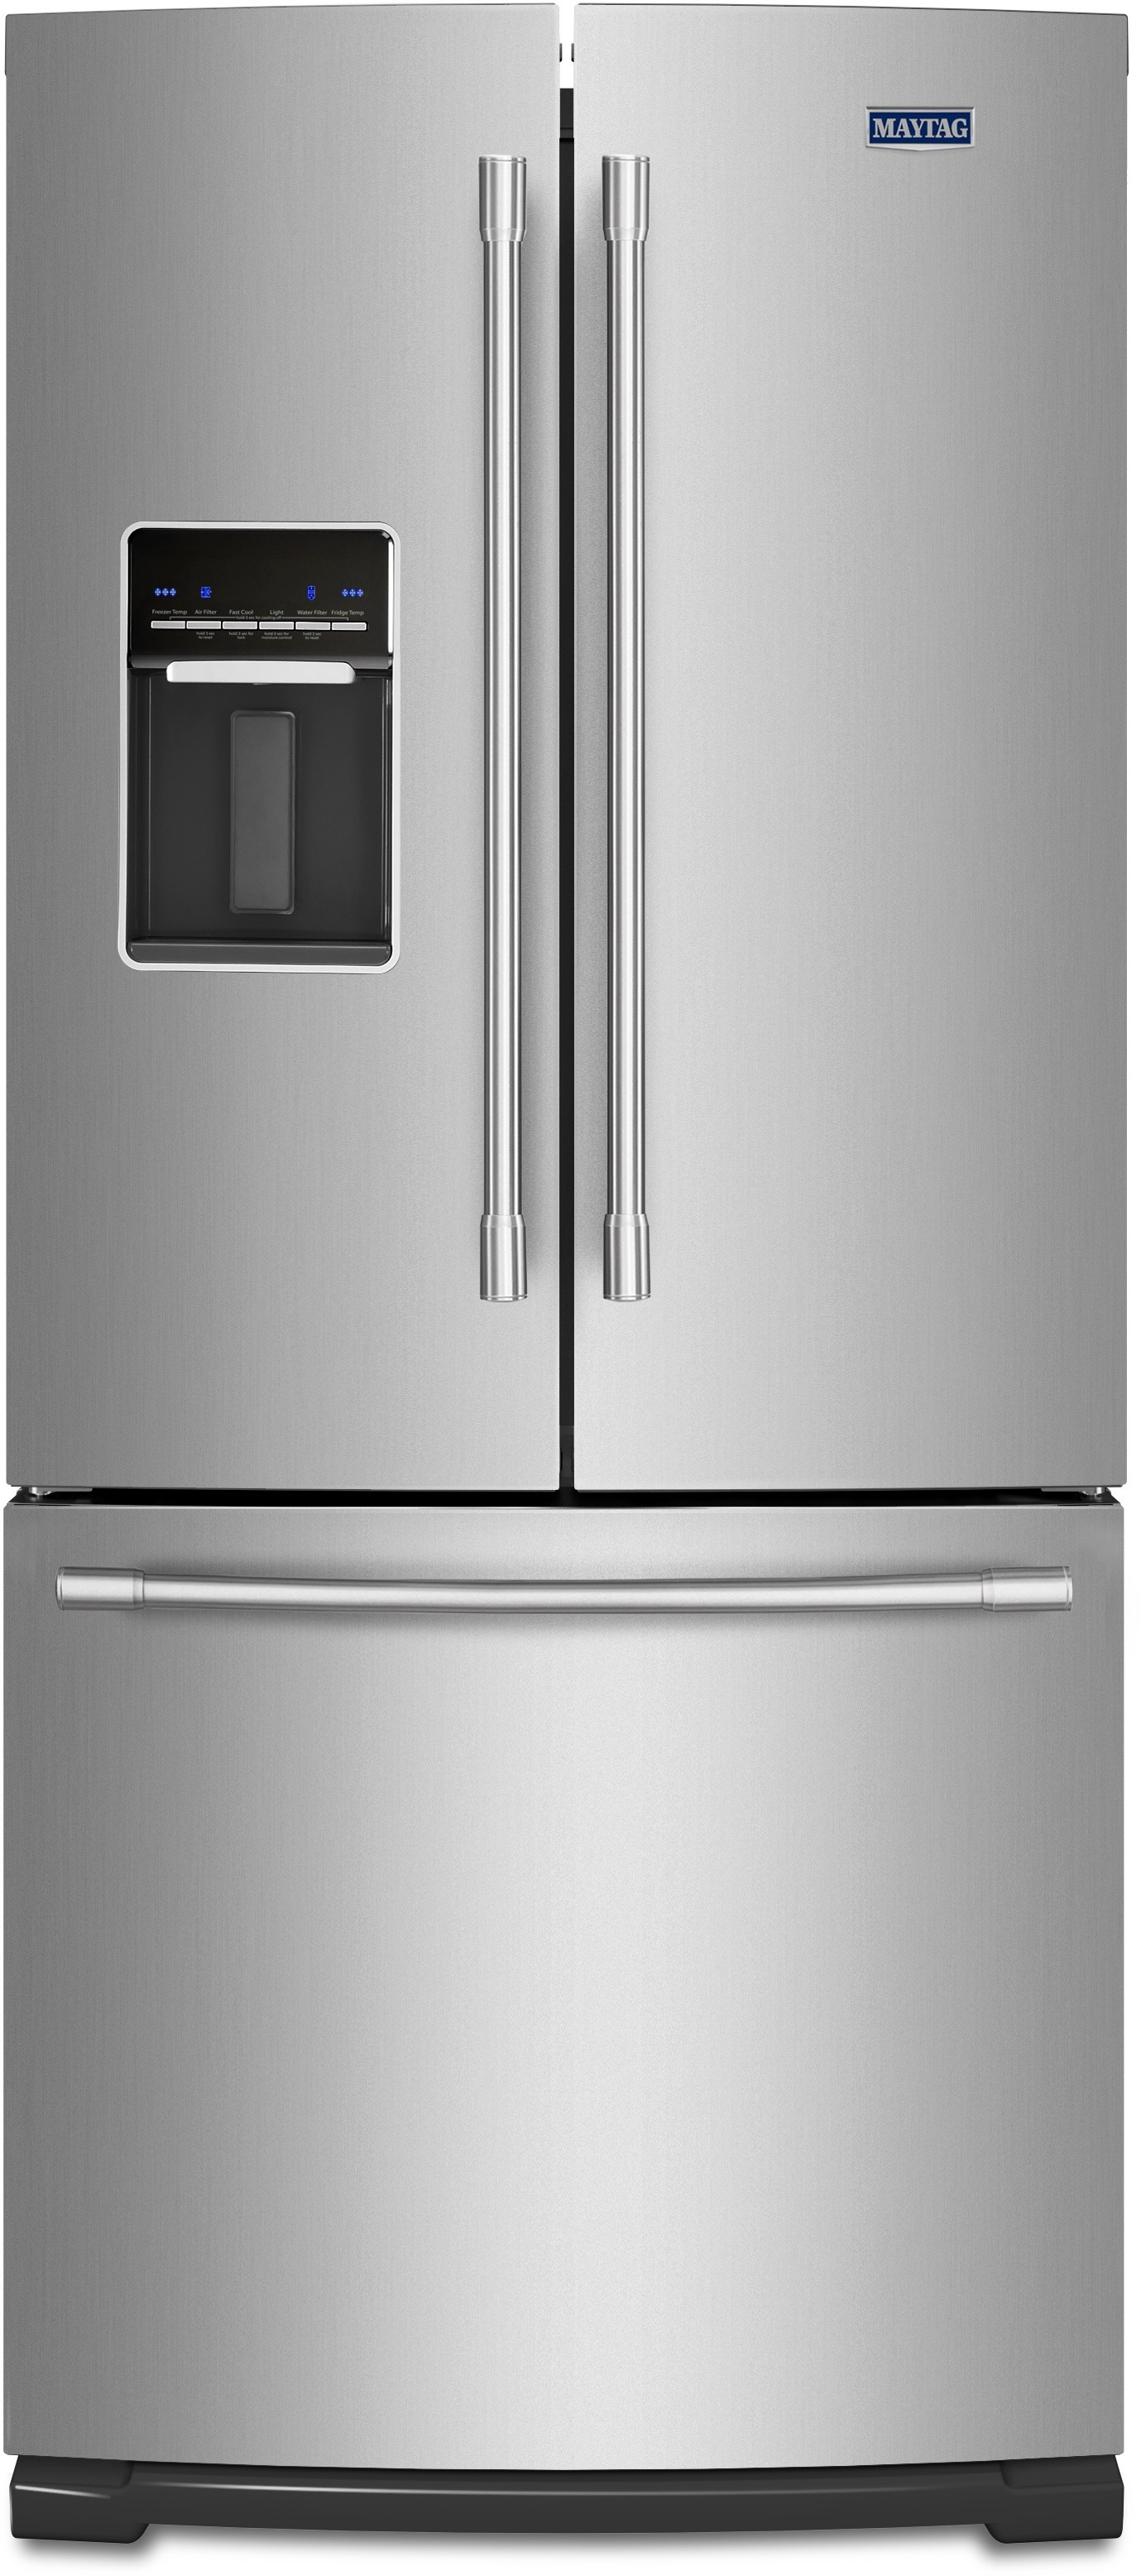 maytag mfw2055frz 30 inch french door with widenfresh deli drawer led lighting humidity controlled freshlock crispers